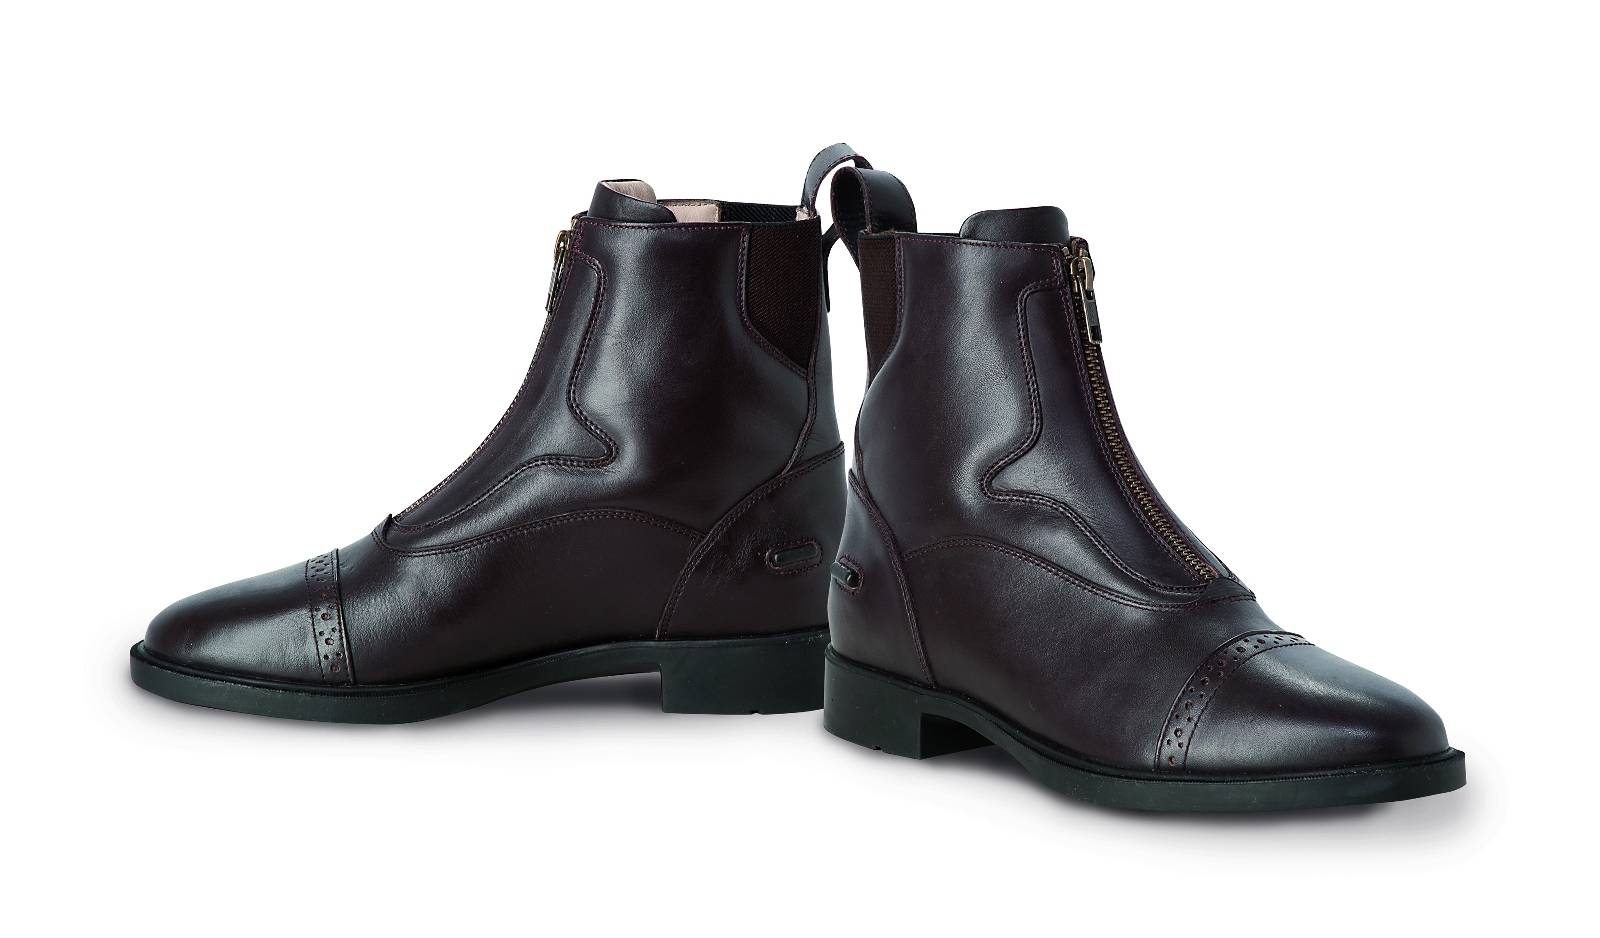 Tredstep Giotto Zip Paddock Boots - Ladies